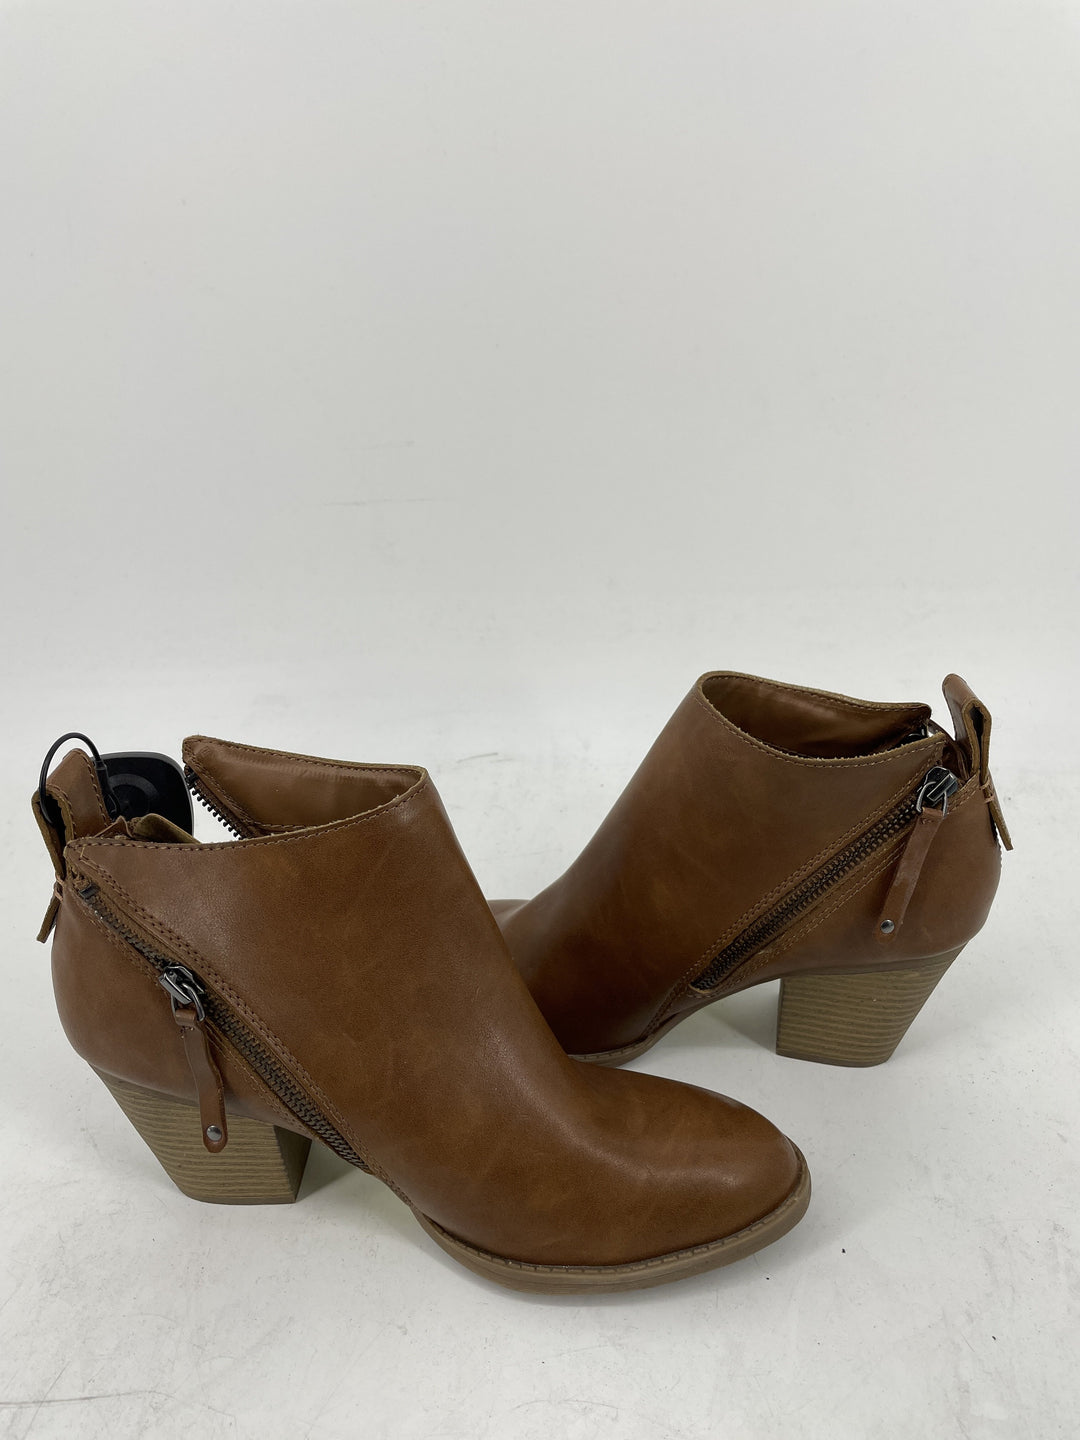 Photo #2 - brand: dv , style: boots ankle , color: brown , size: 8 , sku: 128-3212-49486